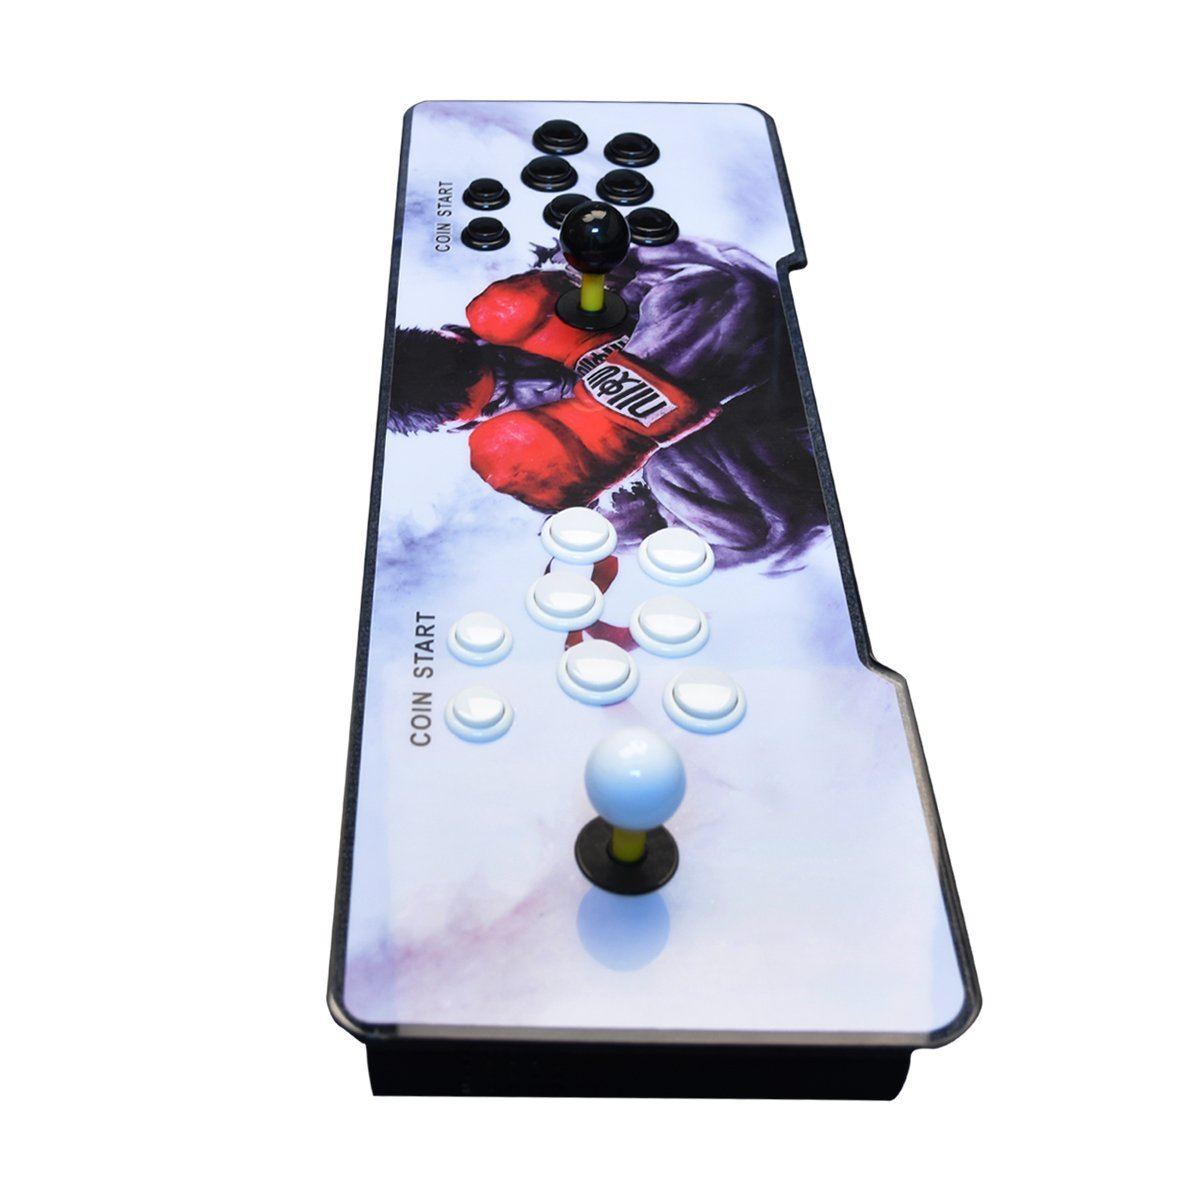 【2400 Games in 1】 Arcade Game Console Ultra Slim Metal Double Stick 2400 Classic Arcade Game Machine 2 Players Pandoras Box 6S 1280X720 Full HD Video Game Console for Computer & Projector & TV by TanDer (Image #3)